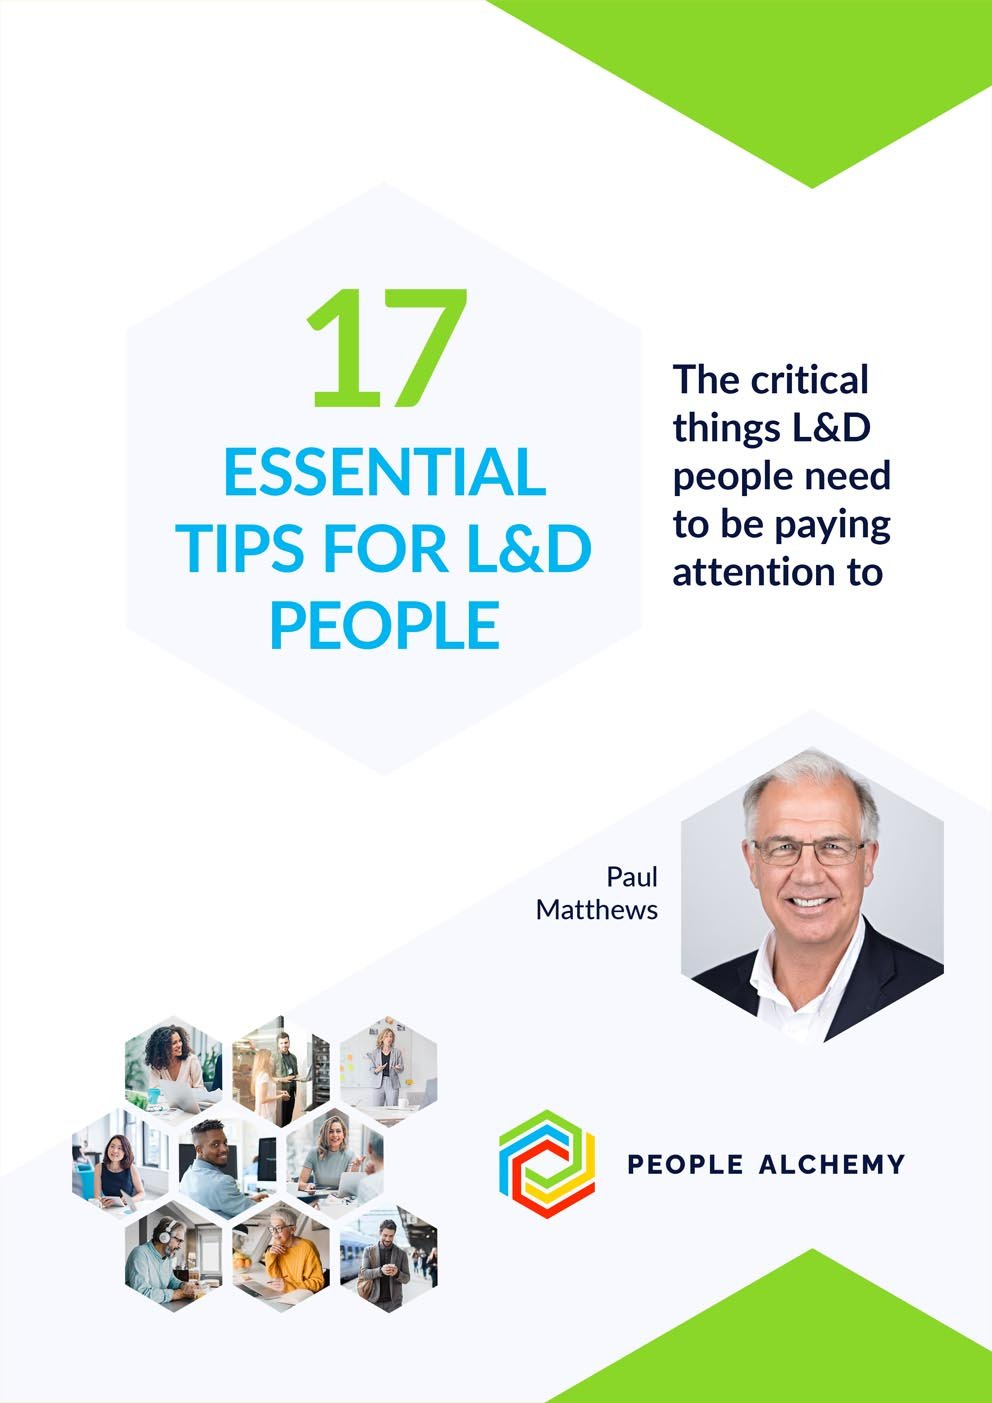 https://peoplealchemy.com/wp-content/uploads/2021/09/PA-Tips-Booklet-2021-covers-HD-1.jpg